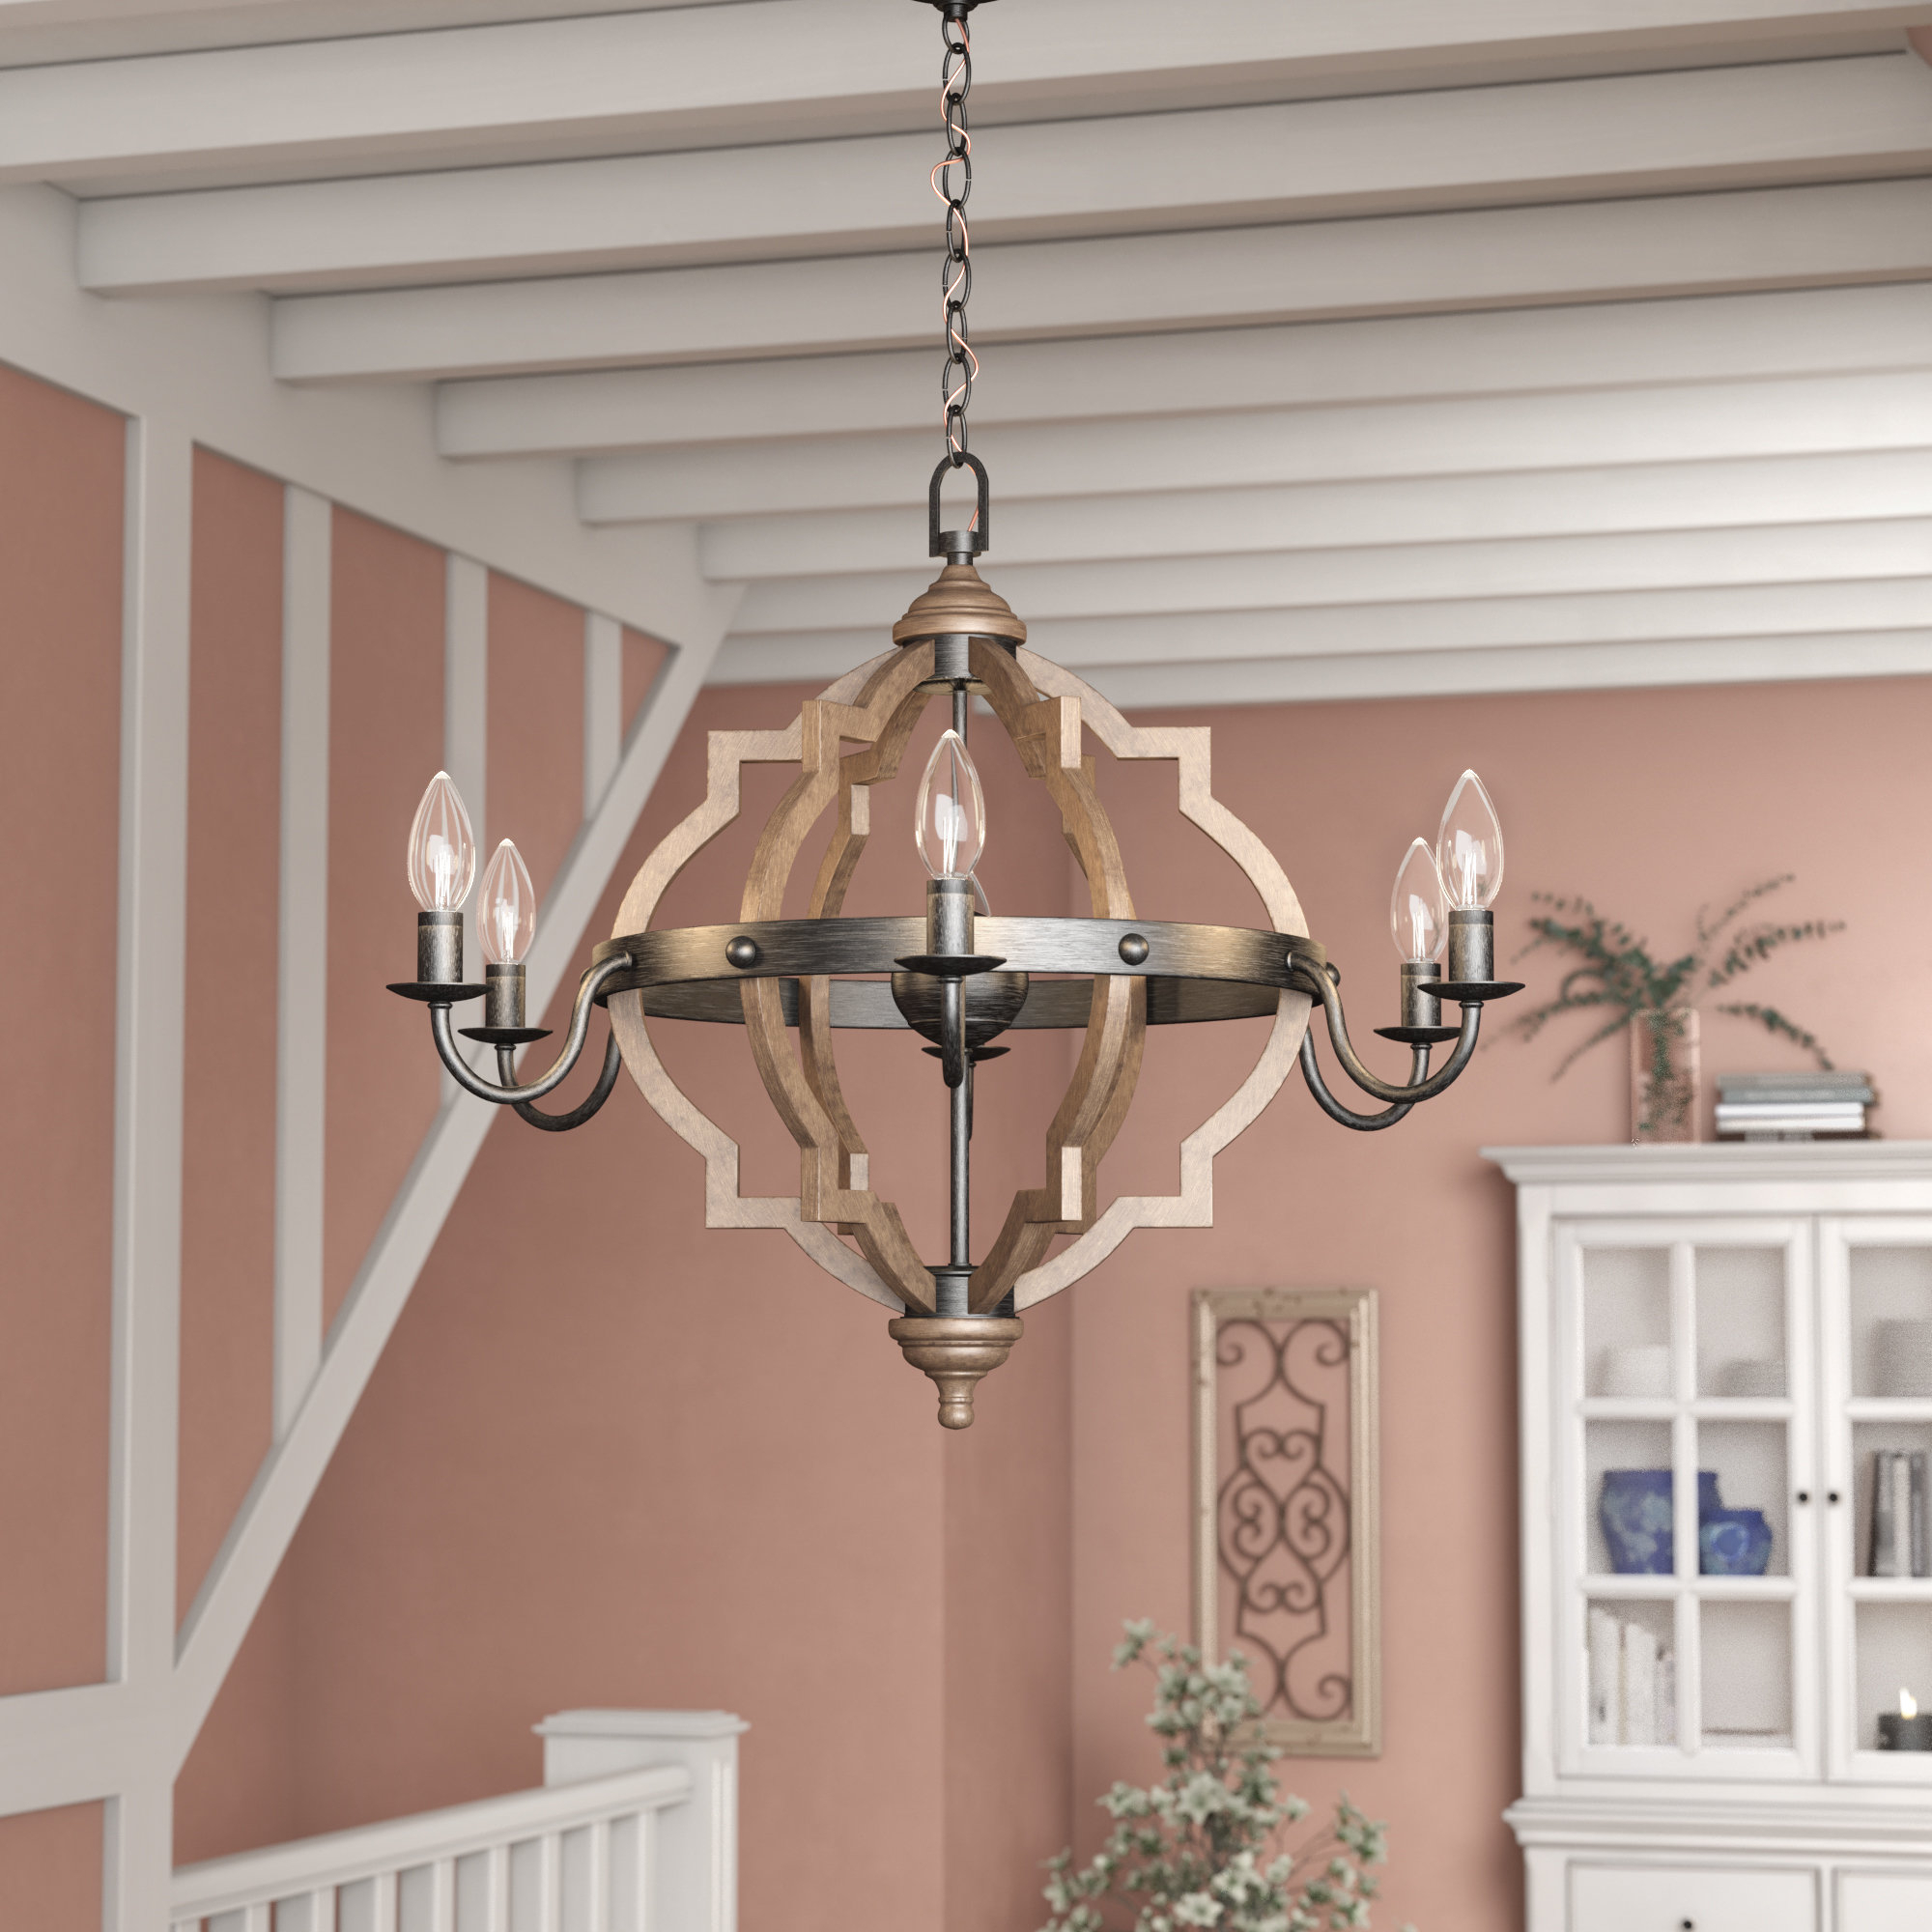 Laurel Foundry Modern Farmhouse Donna 6-Light Candle Style in Donna 6-Light Globe Chandeliers (Image 23 of 30)